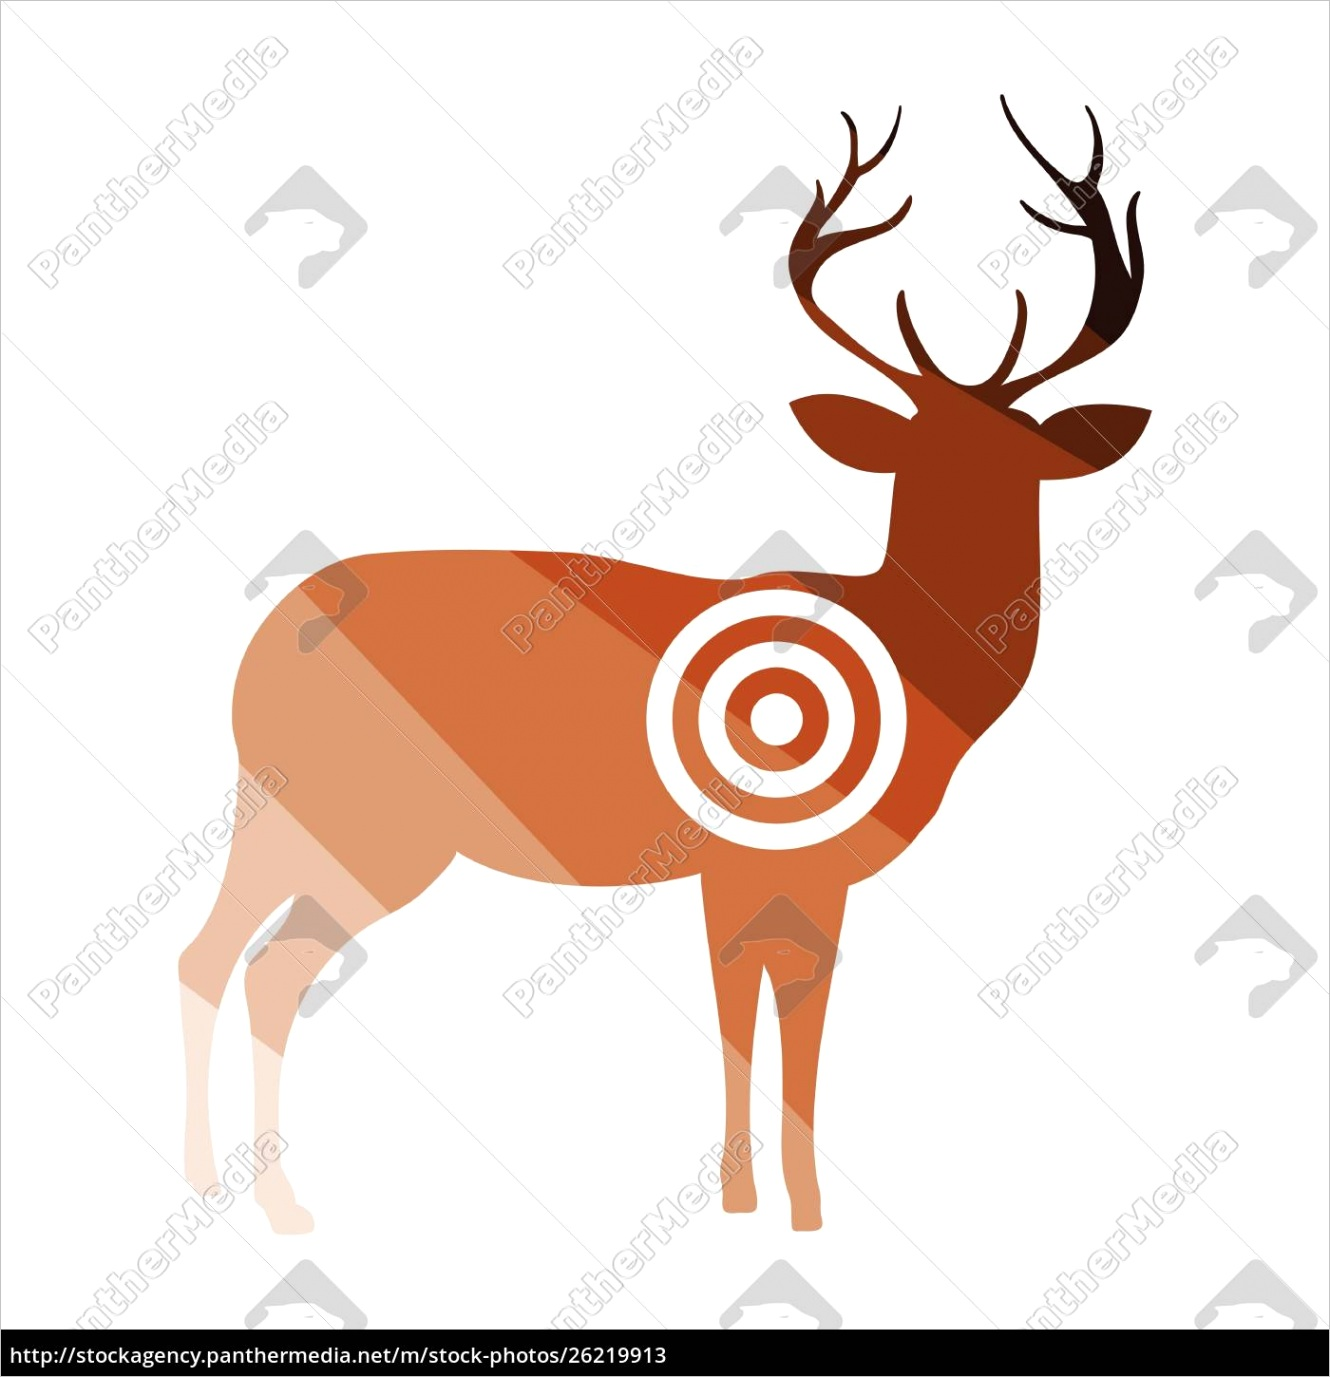 deer silhouette with tar icon